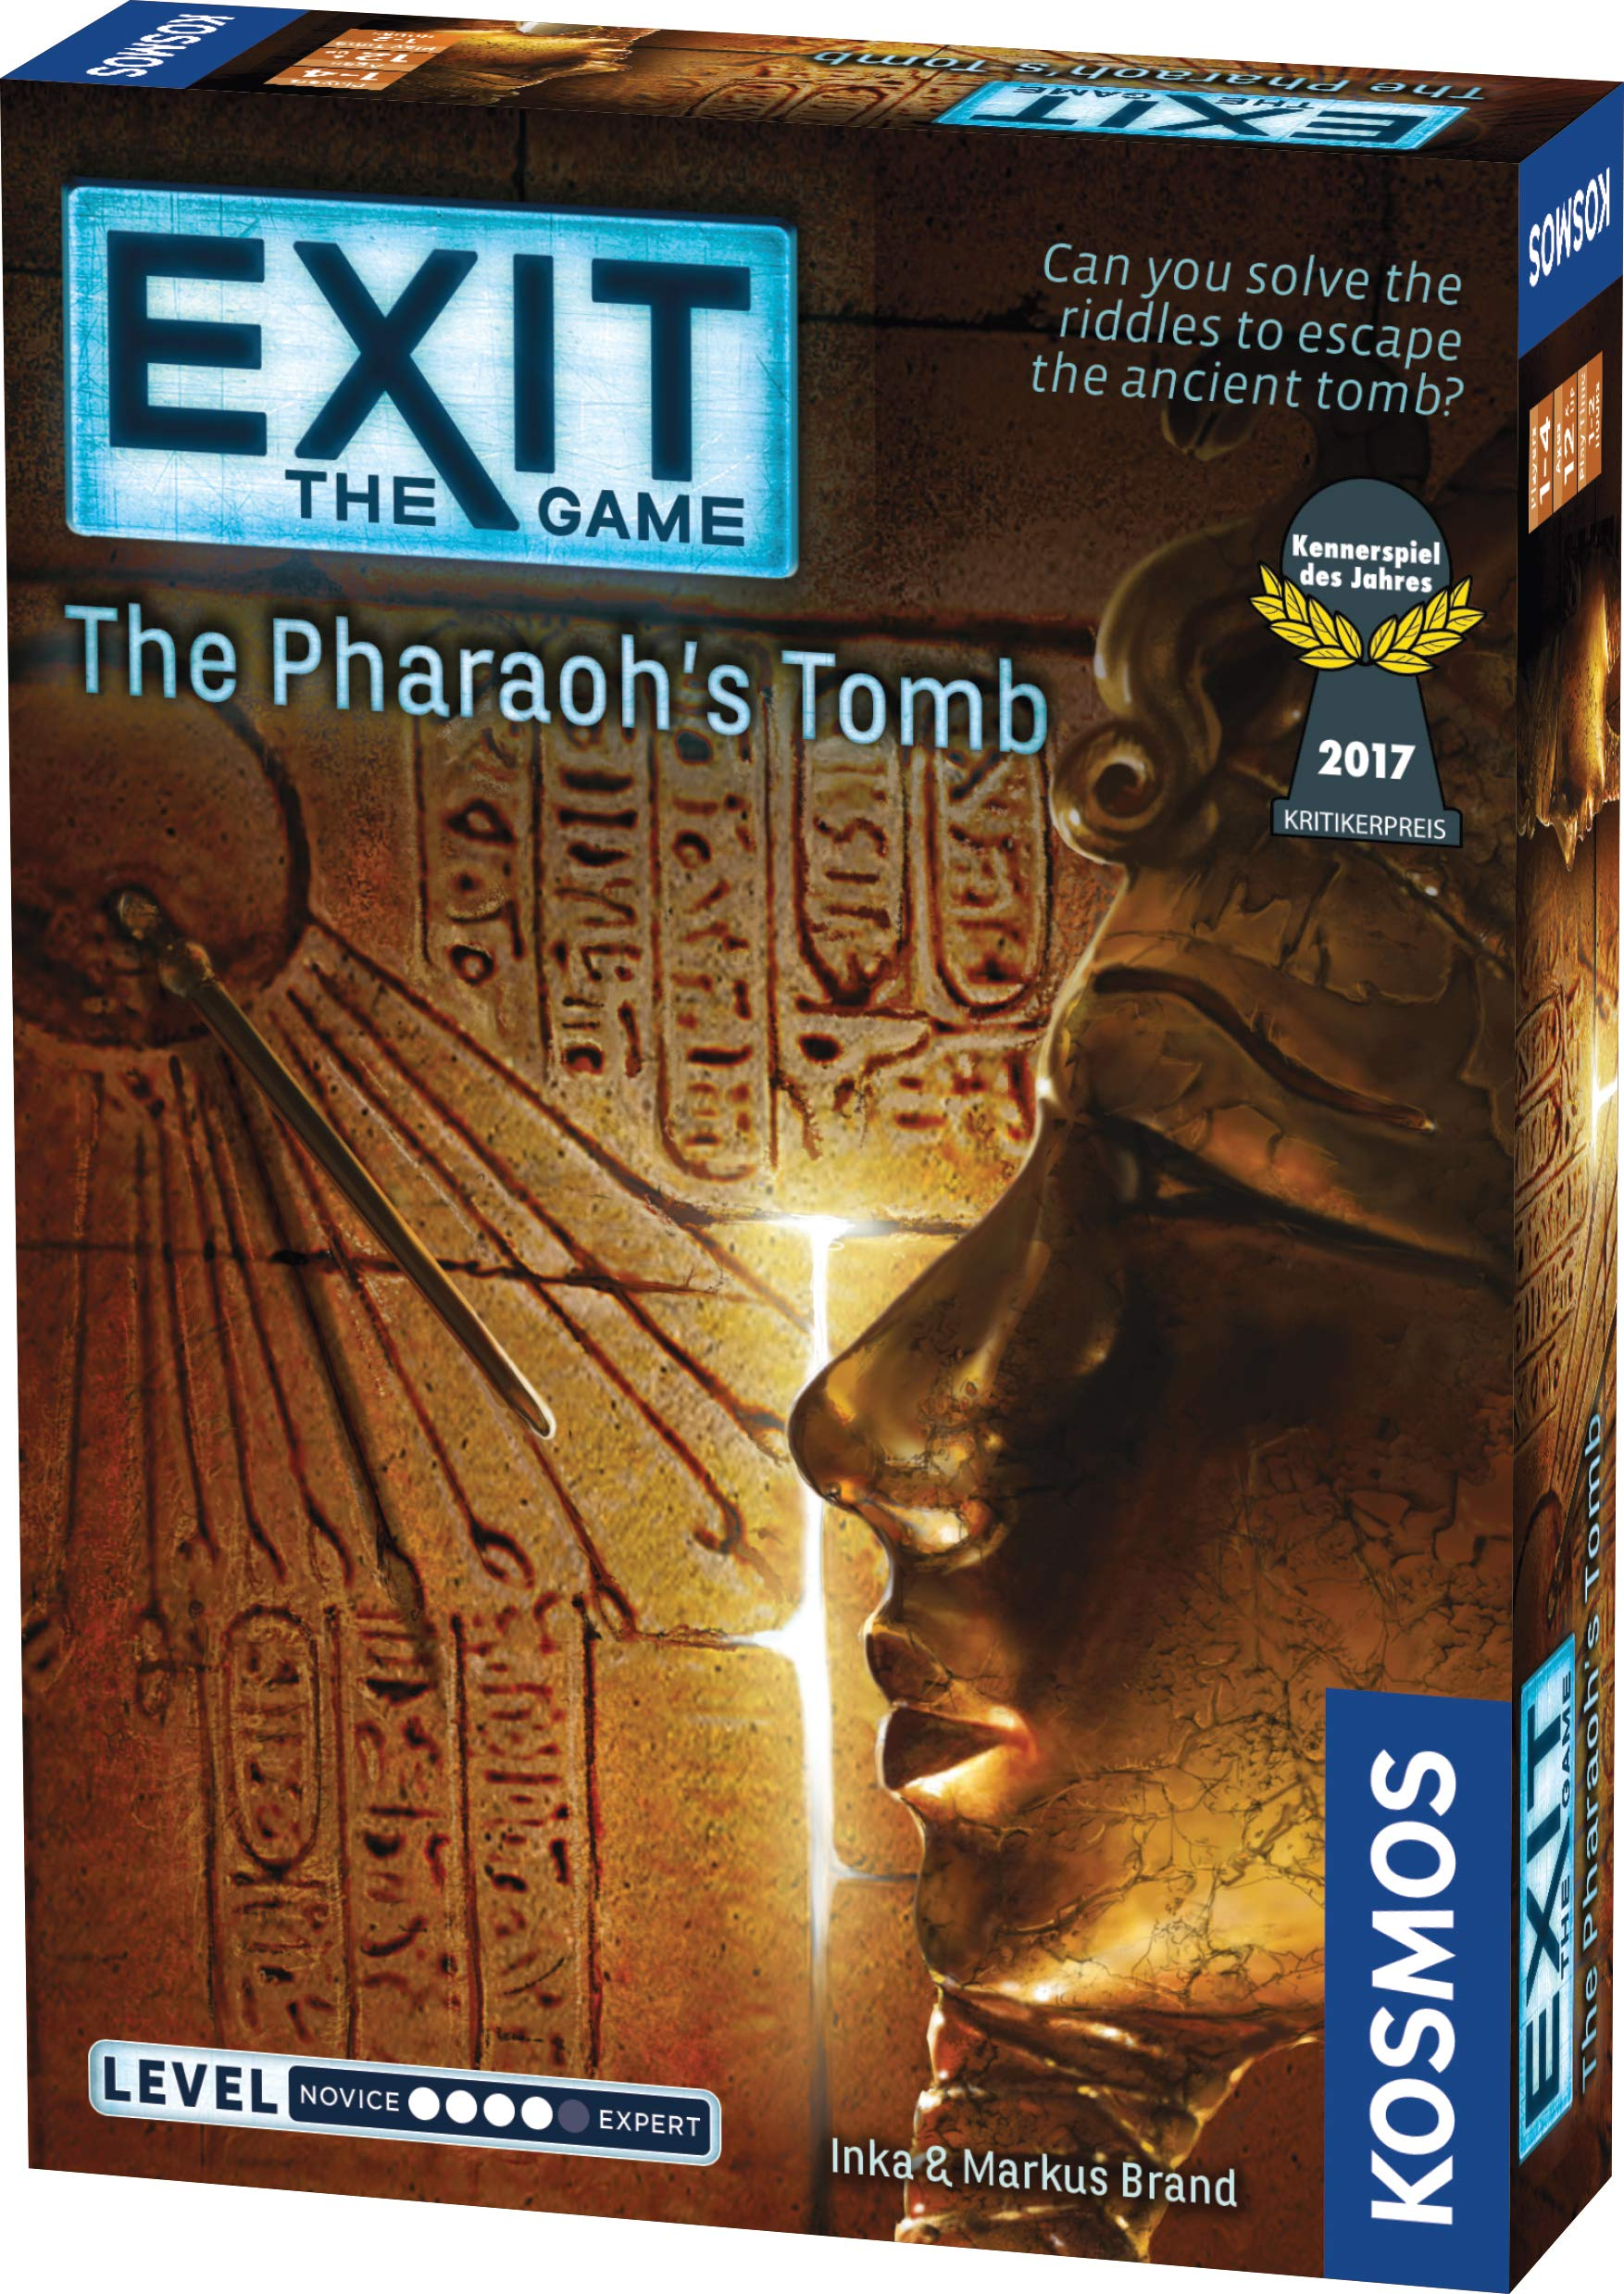 Exit: The Pharaoh's Tomb | Exit: The Game - A Kosmos Game | Kennerspiel Des Jahres Winner | Family-Friendly, Card-Based at-Home Escape Room Experience for 1 to 4 Players, Ages 12+                ThinkFun Escape the Room Stargazer's Manor - An Escape Room Experience in a Box For Age 10 and Up                Escape Room The Game, Version 2 - with 4 Thrilling Escape Rooms | Solve The Mystery Board Game for Adults and Teens